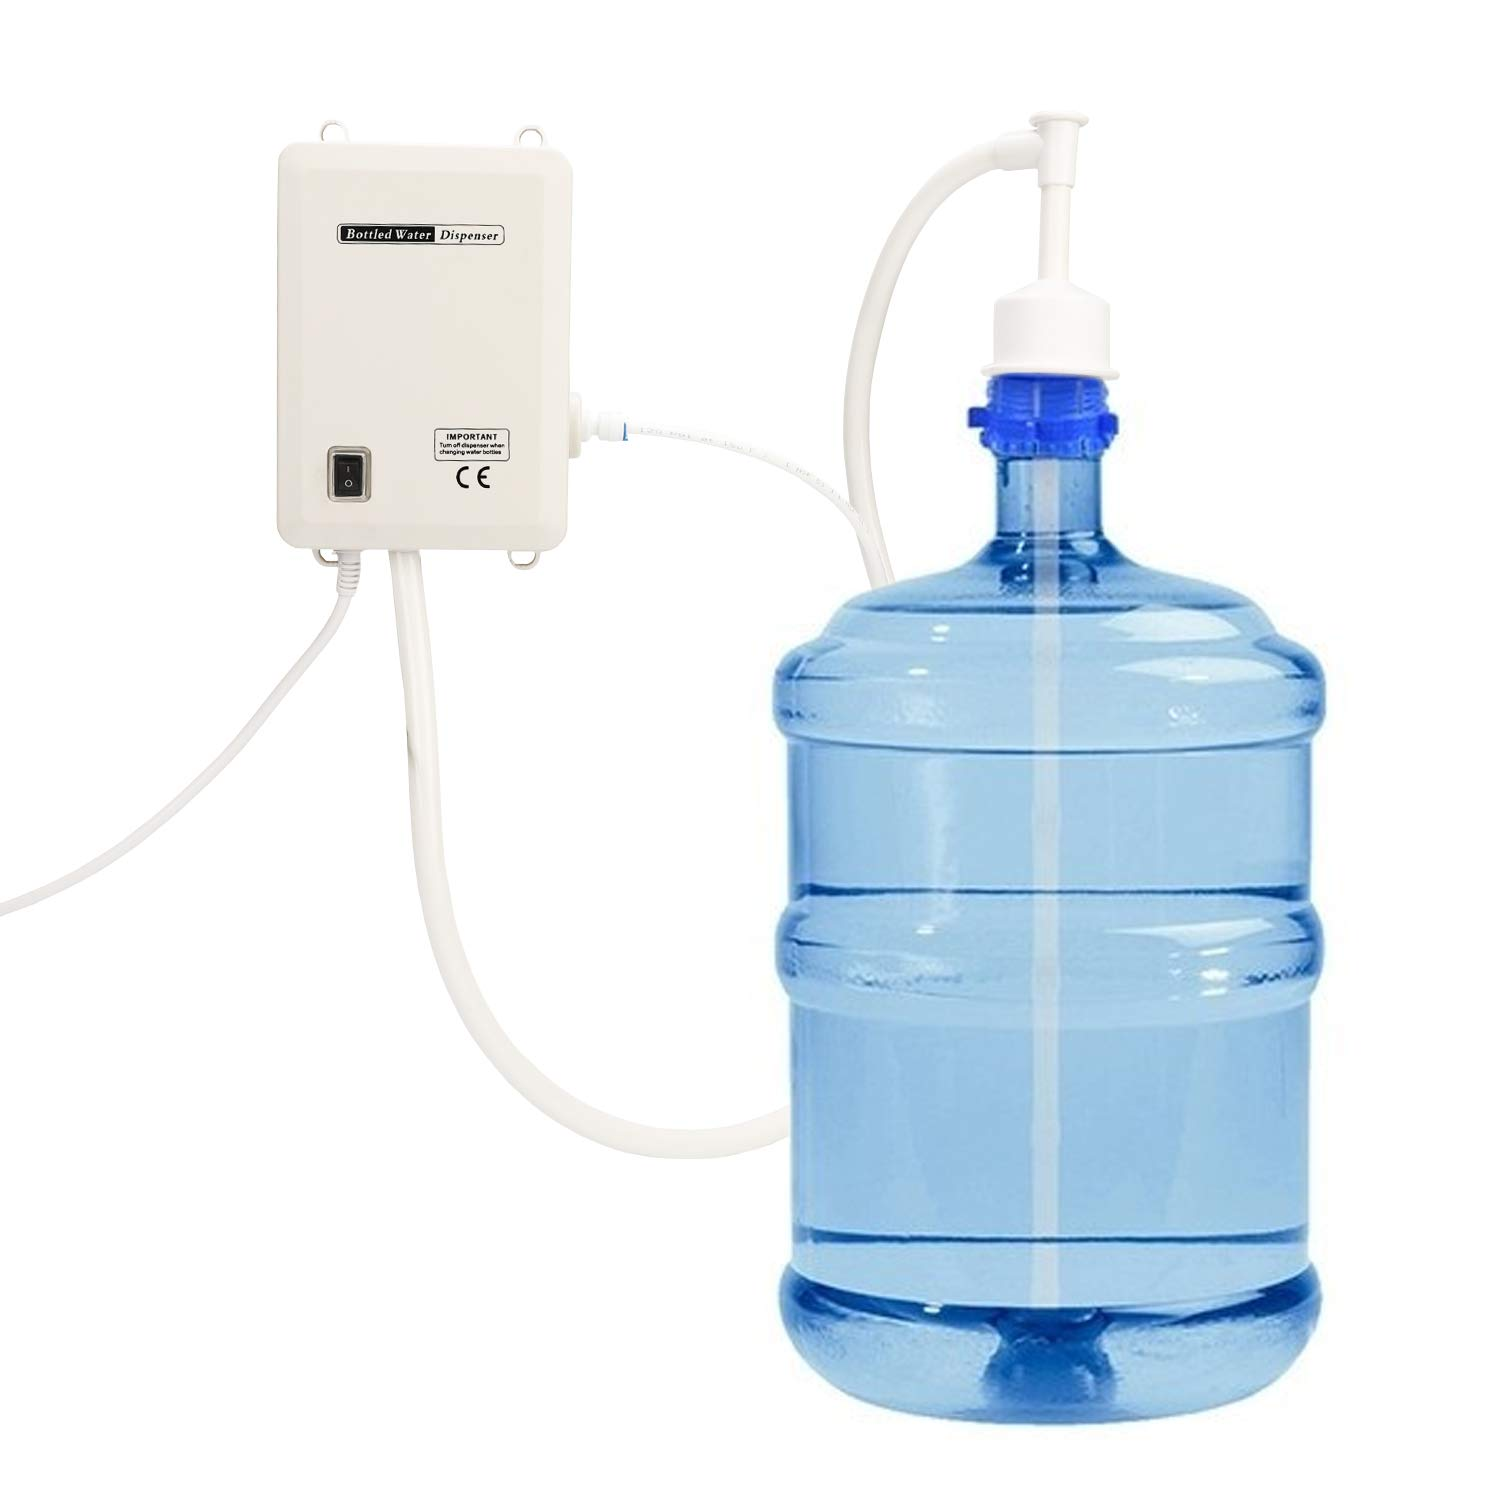 Water Dispenser Pump System, Electric Bottled Water Dispensing Pumpwith Single Inlet 110V AC US Plug Compatible Use with Coffee/Tea Machines, Water Dispensers, Refrigerators, Ice Makers